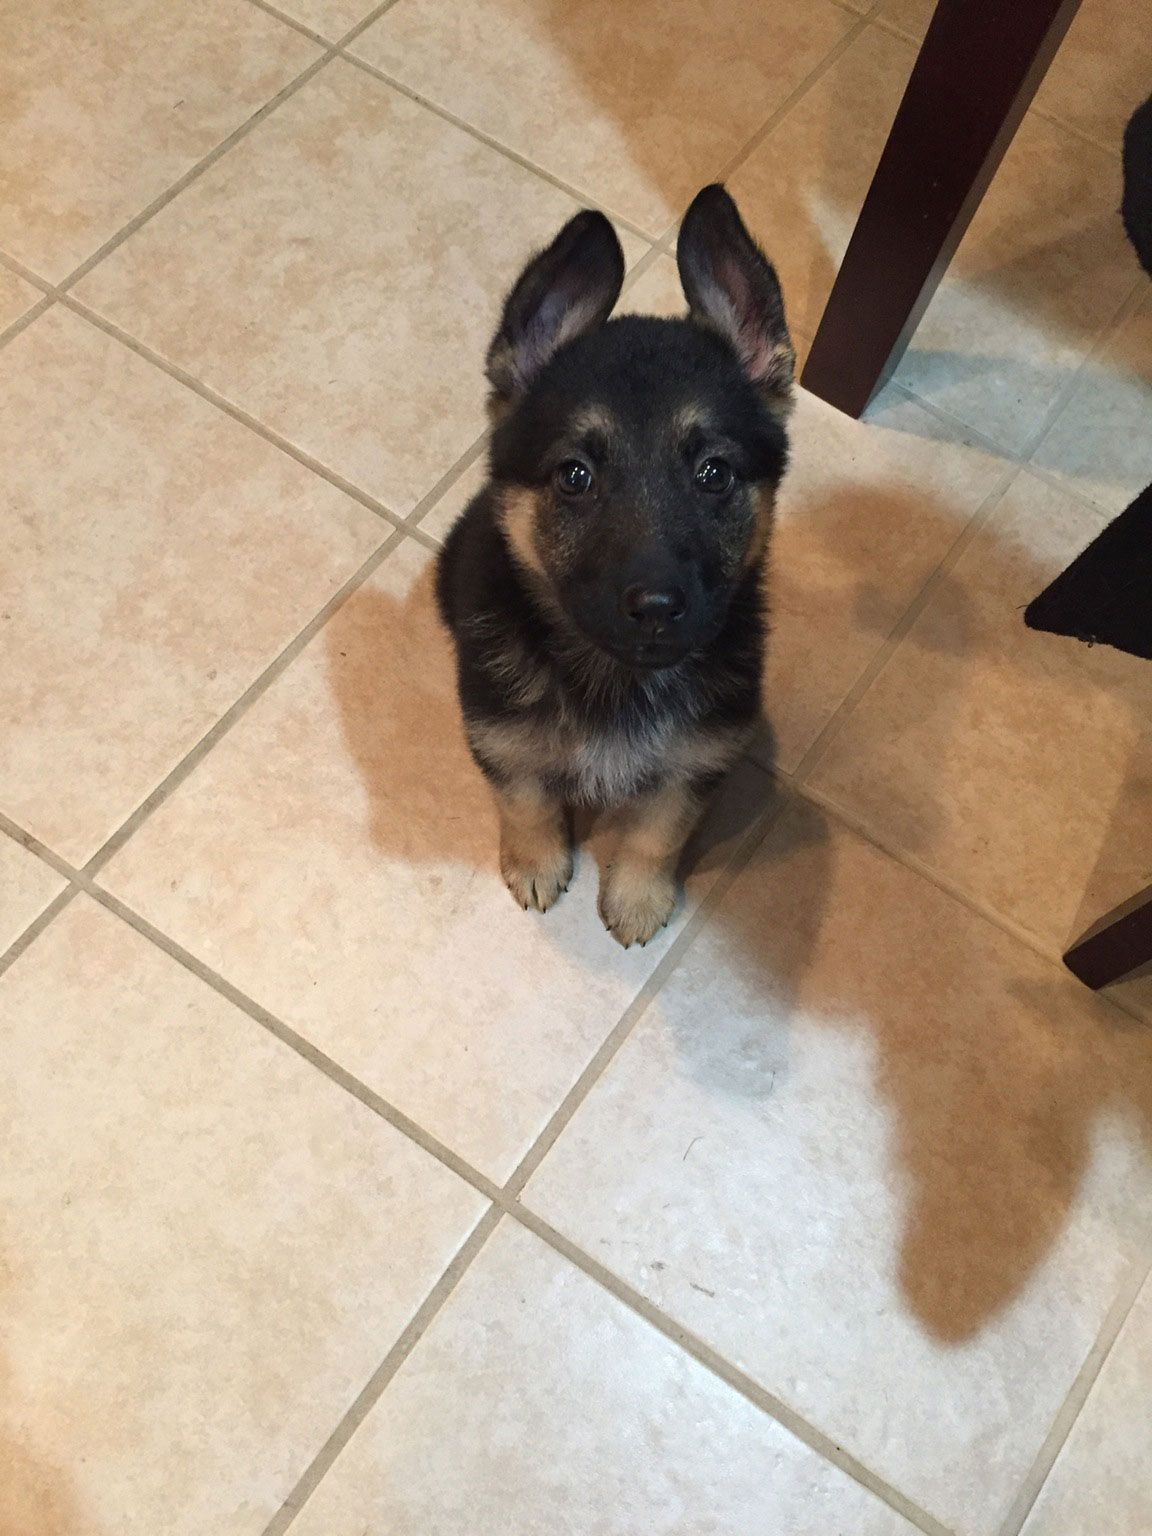 This Is Ava She Is 10 Weeks Old German Shepherd Puppy And Knows Sit